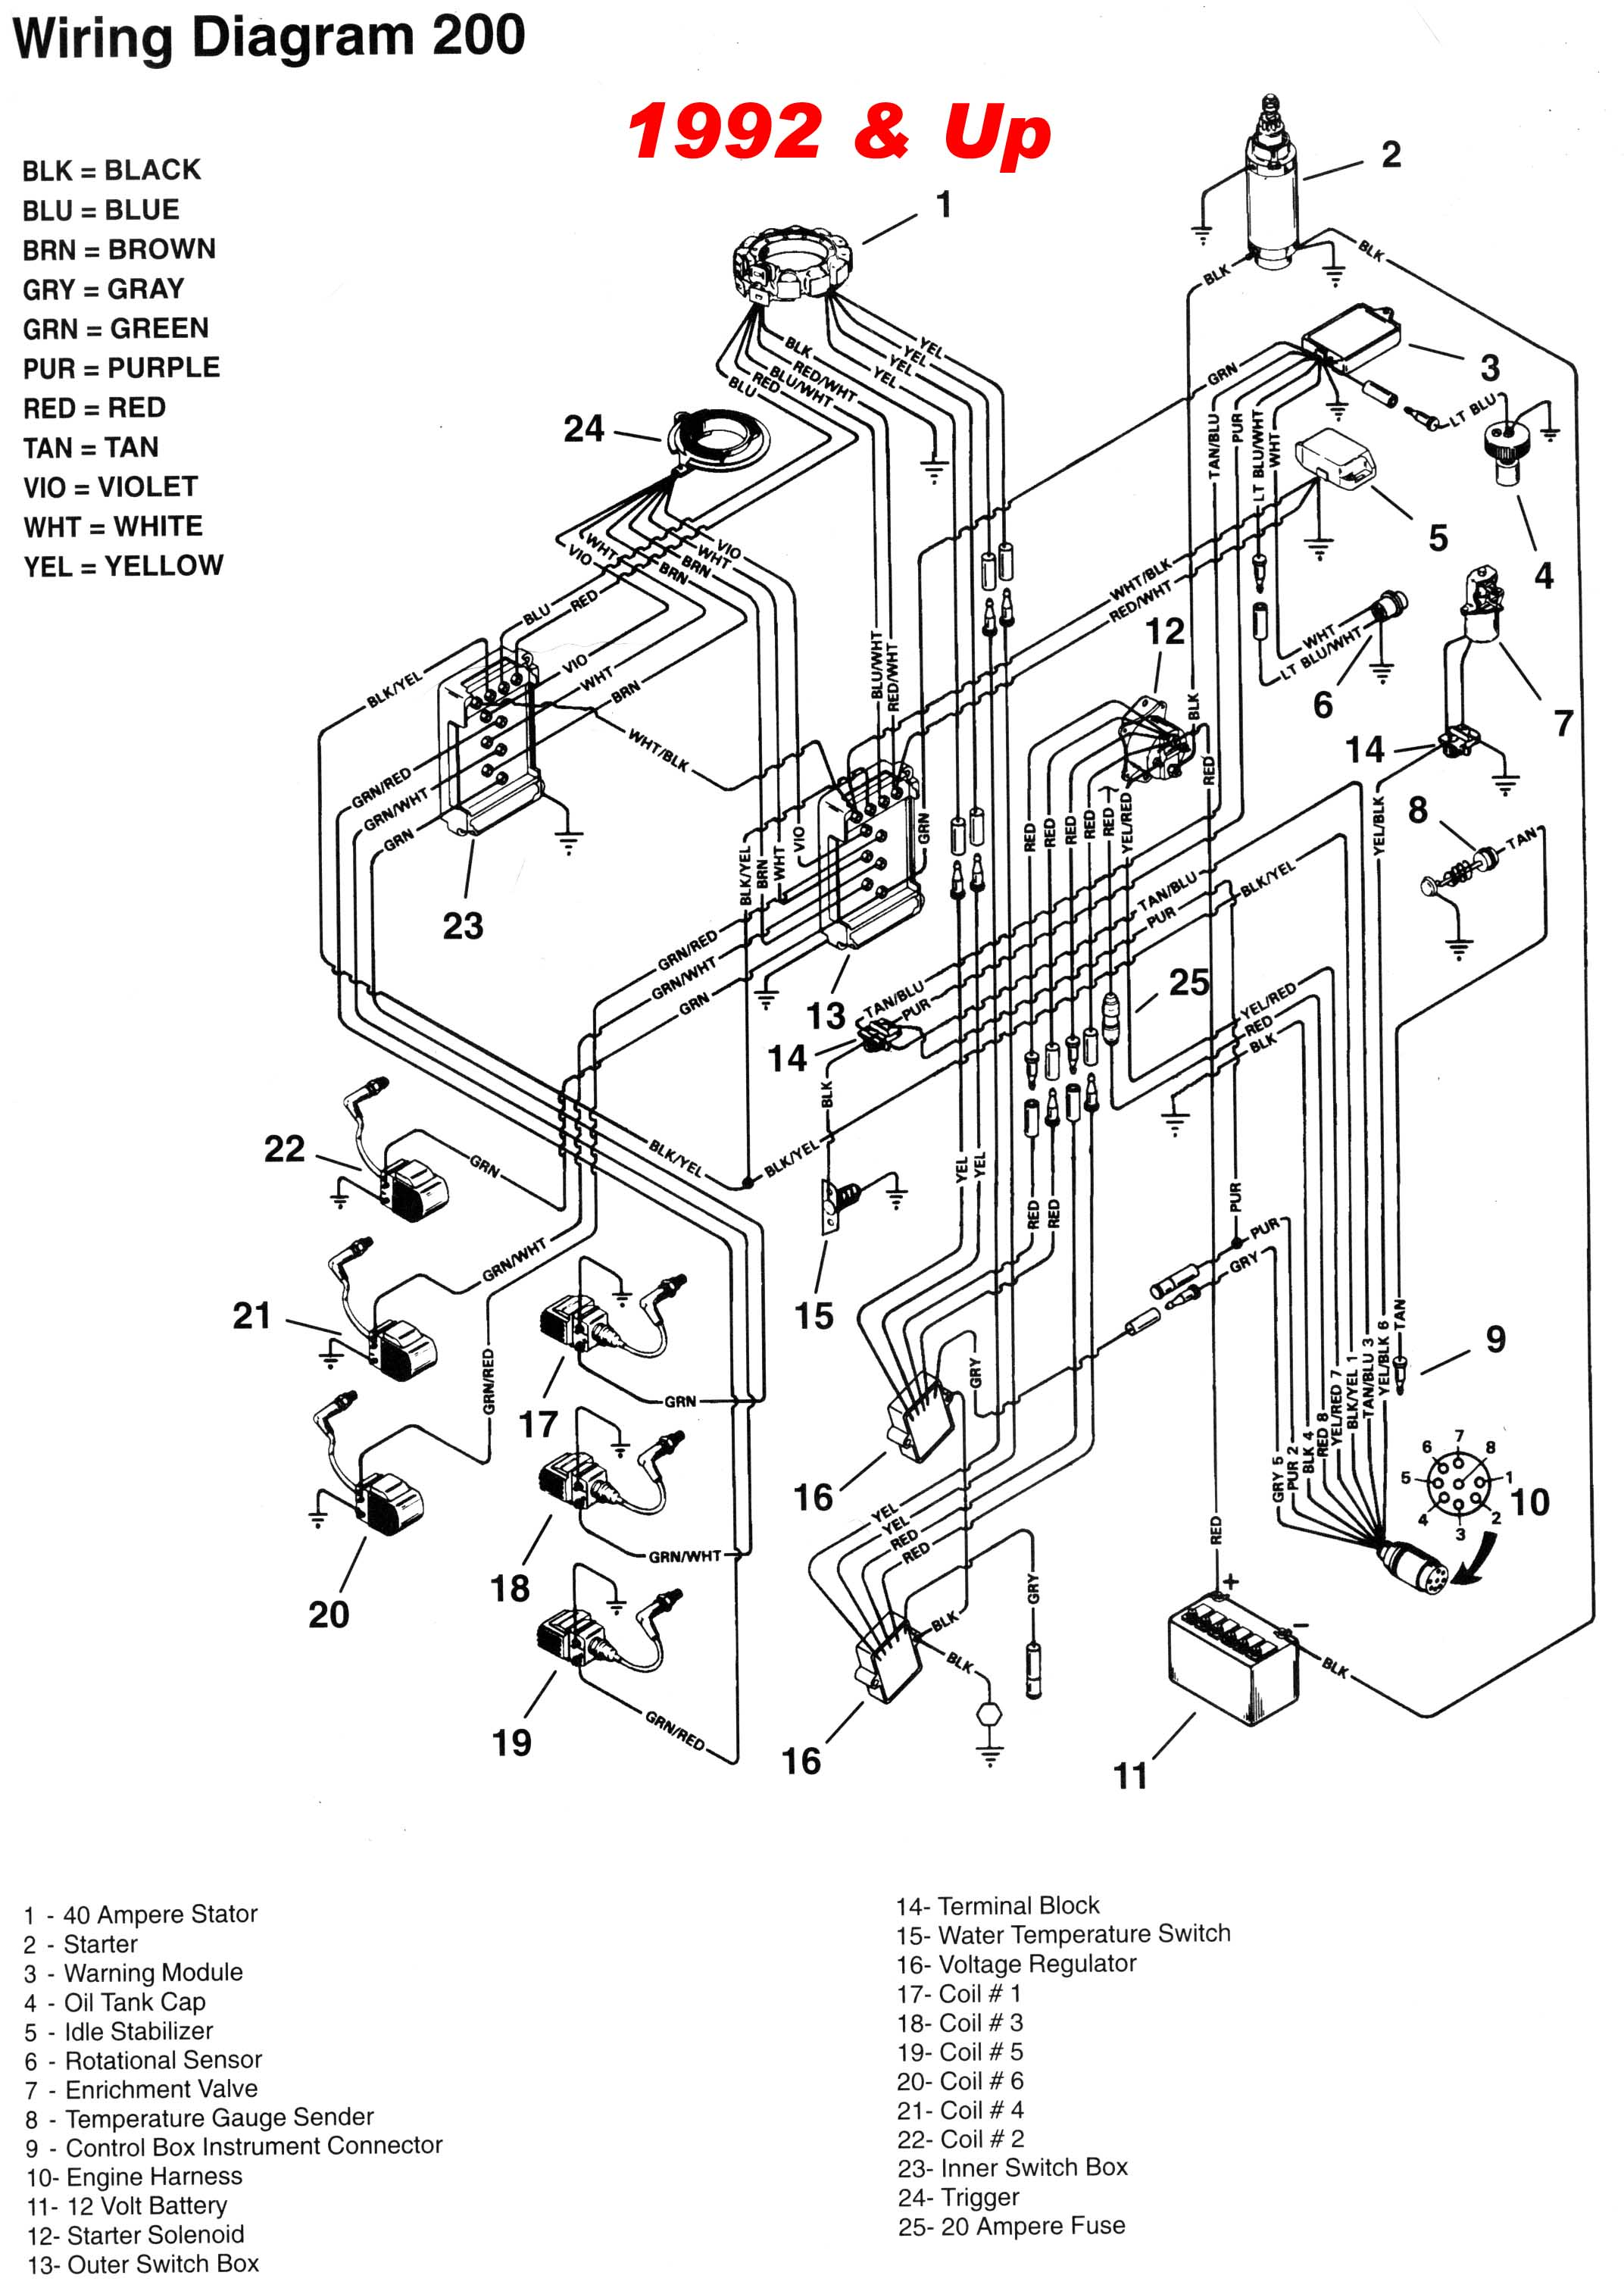 mercury_92up_200_wiring mercury optimax wiring diagram mercury verado wiring diagram johnson outboard motor wiring harness 50 hp at soozxer.org